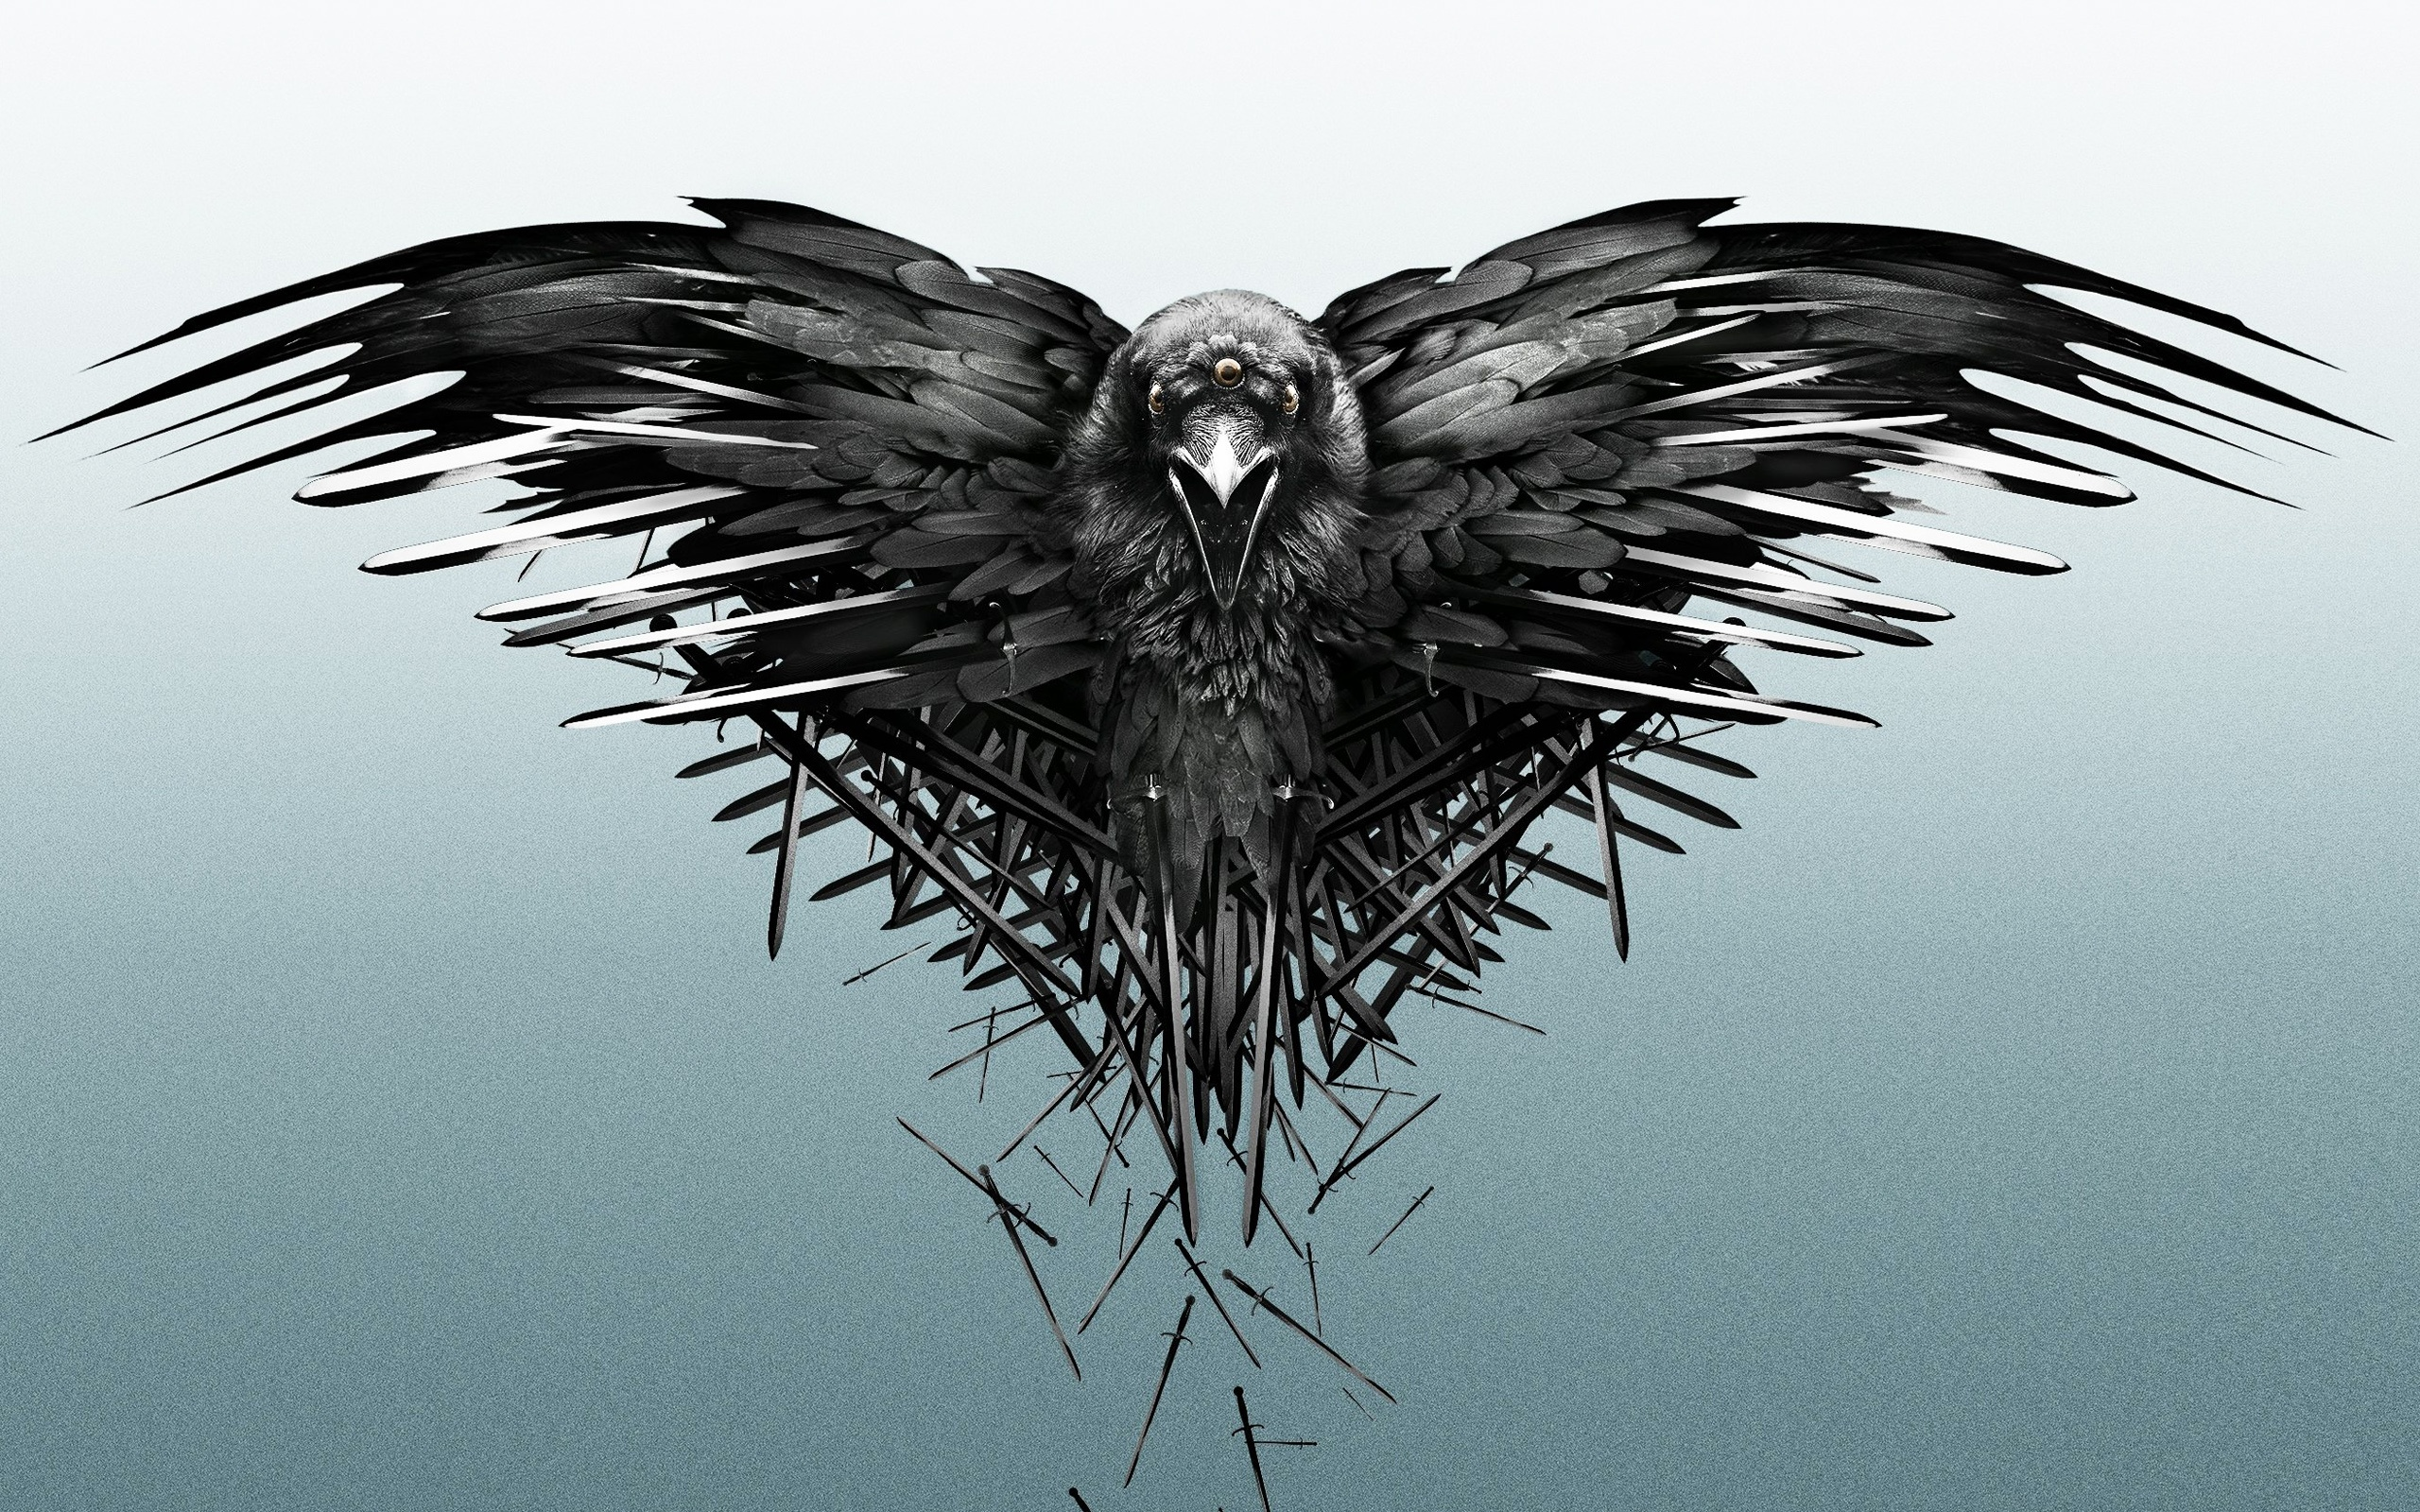 Game of Thrones Season 4 Wallpapers HD Wallpapers 2560x1600